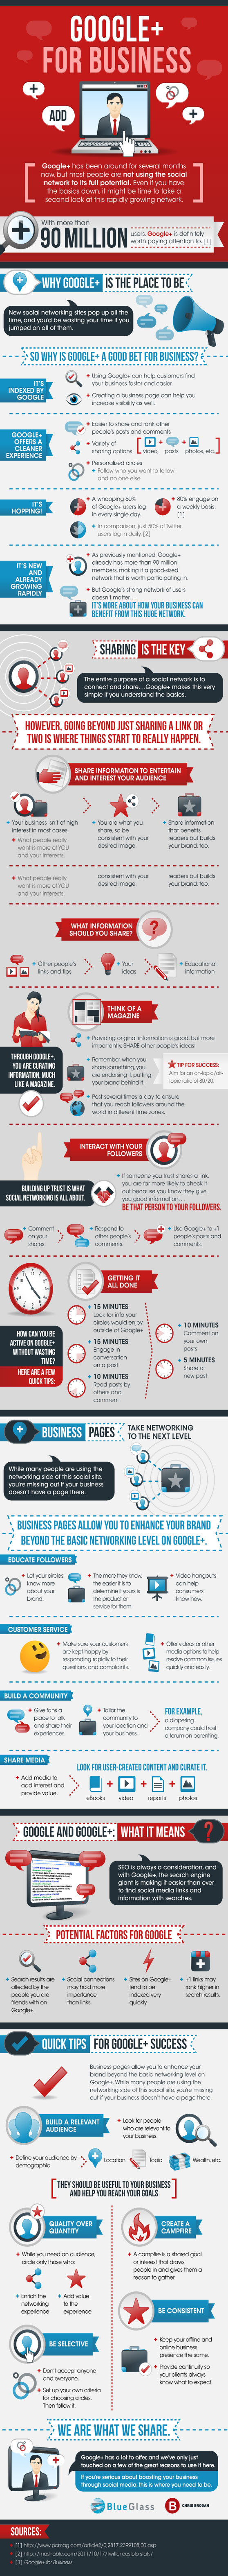 Google+-for-Business-Infographic